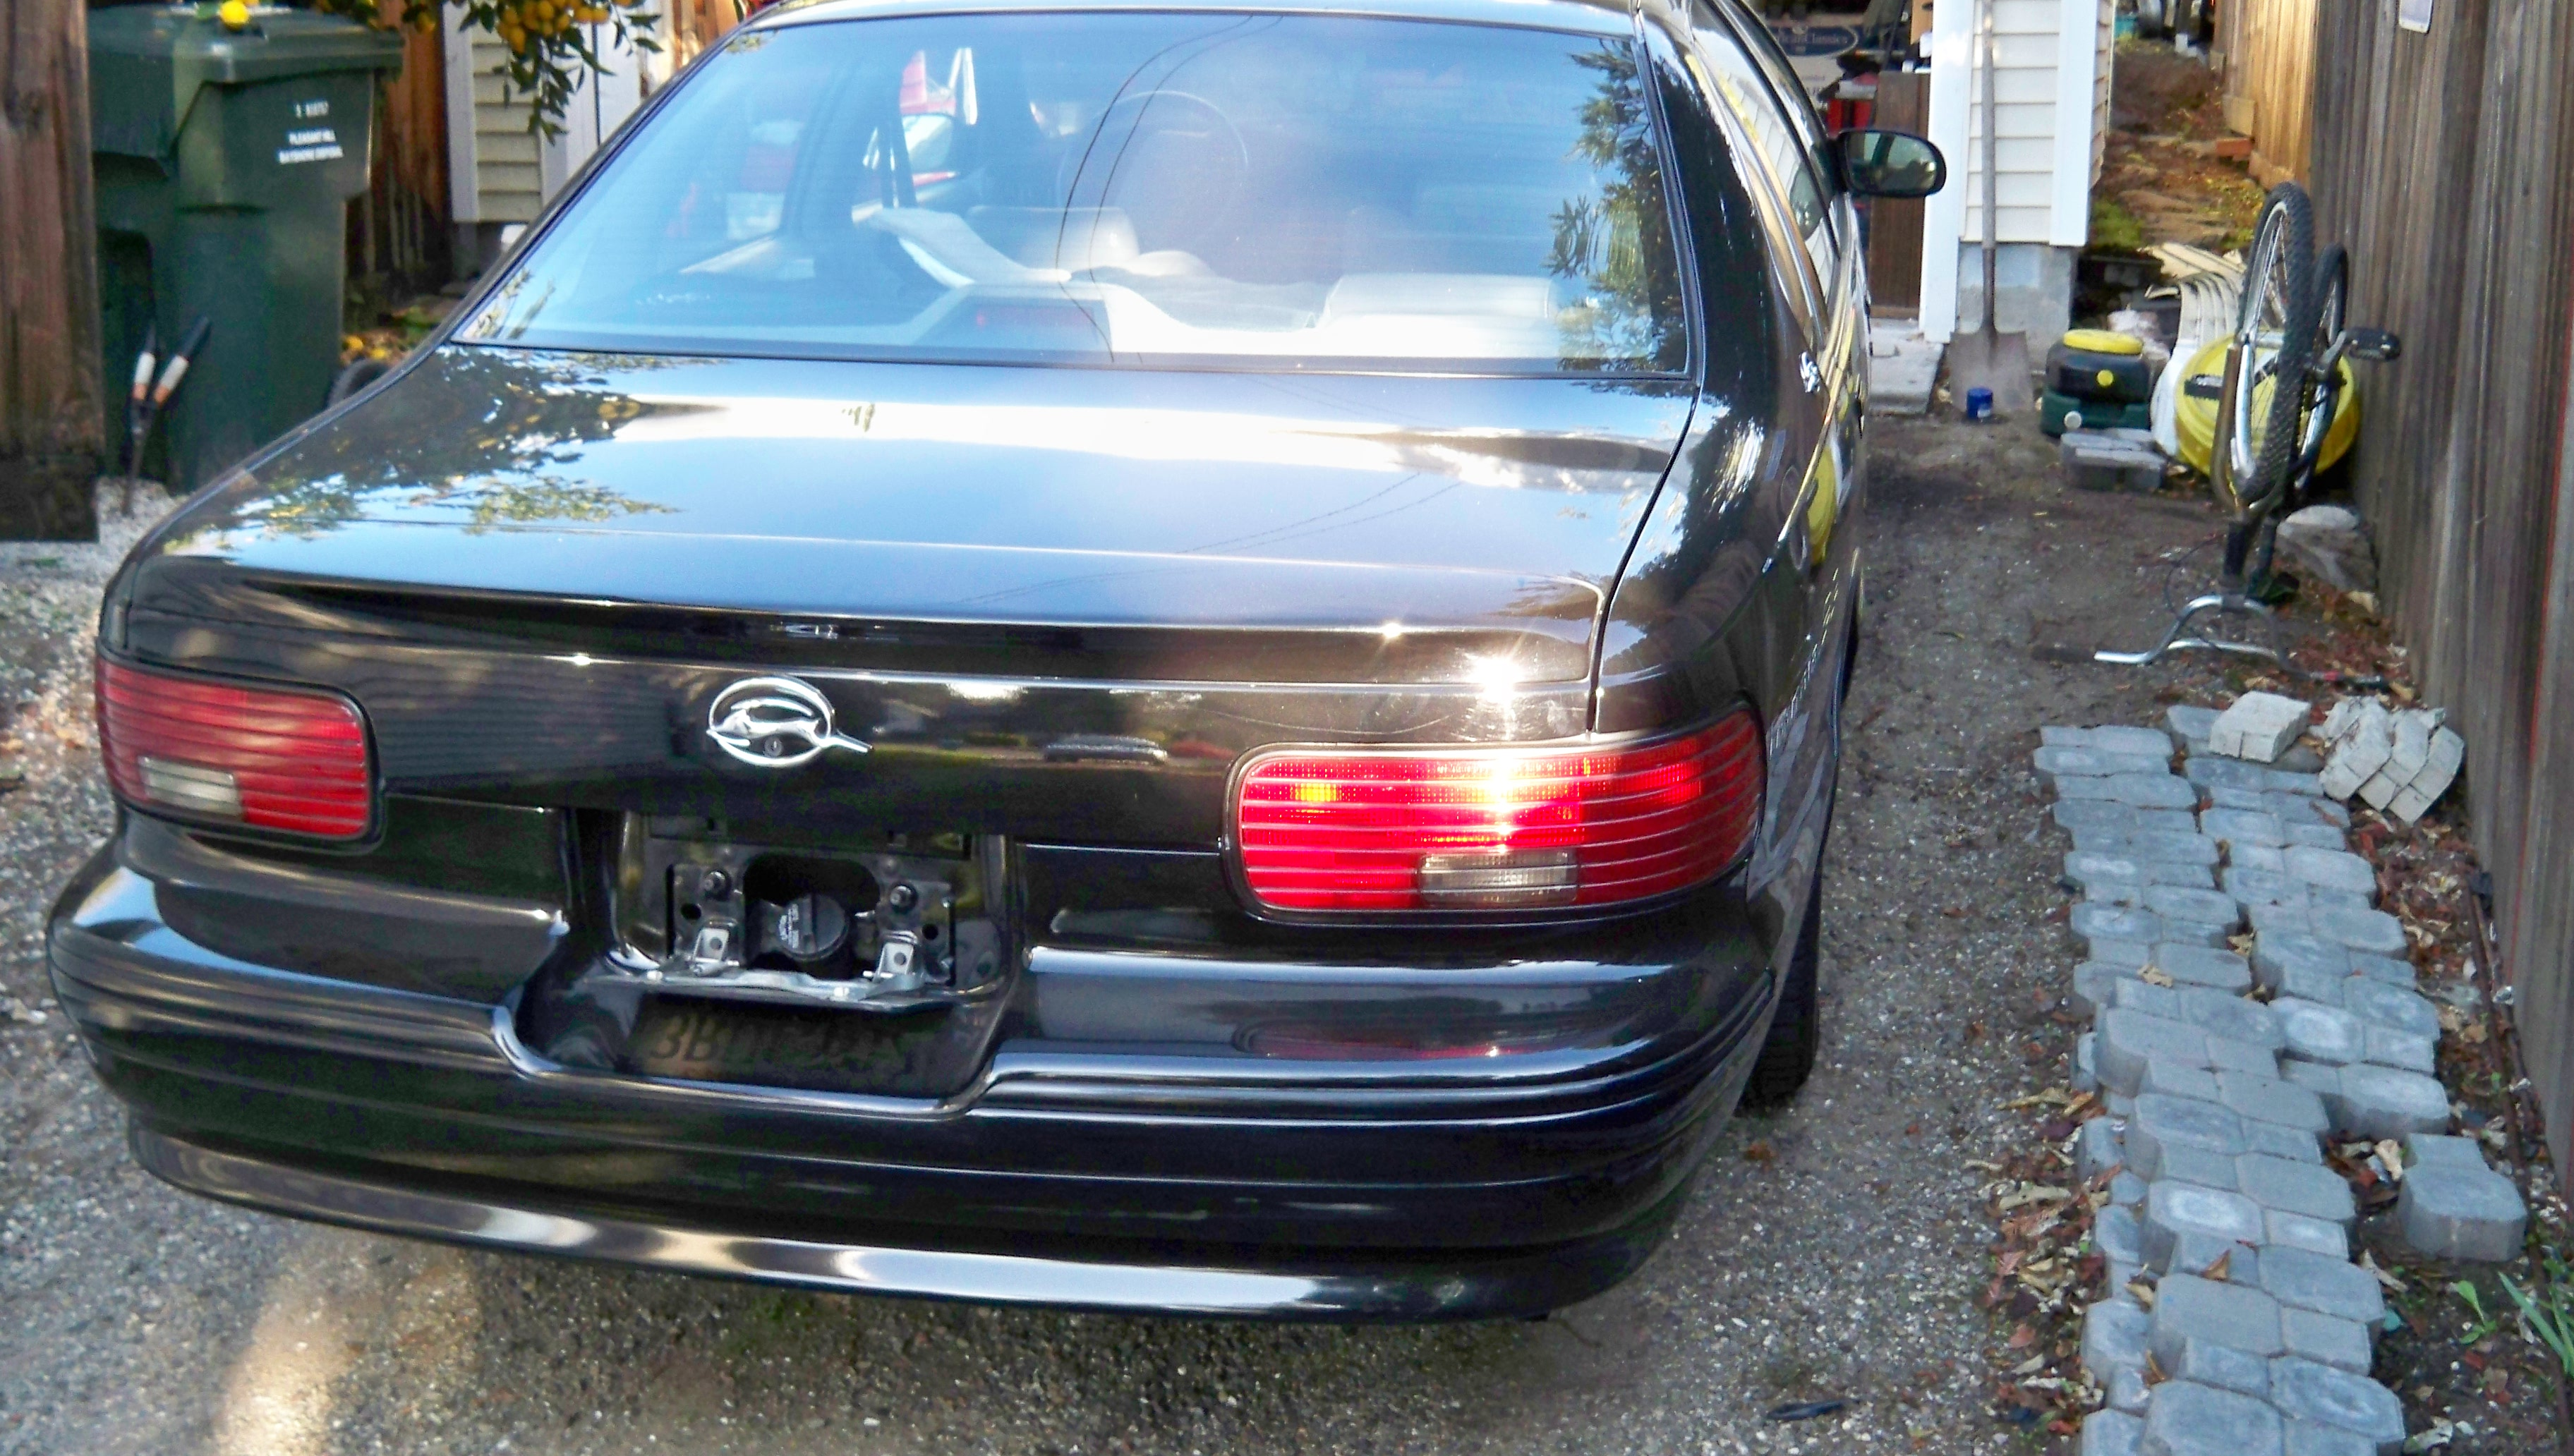 Cars For Sale Bay Area >> F/S 1996 SS Impala - Chevy Impala Forums